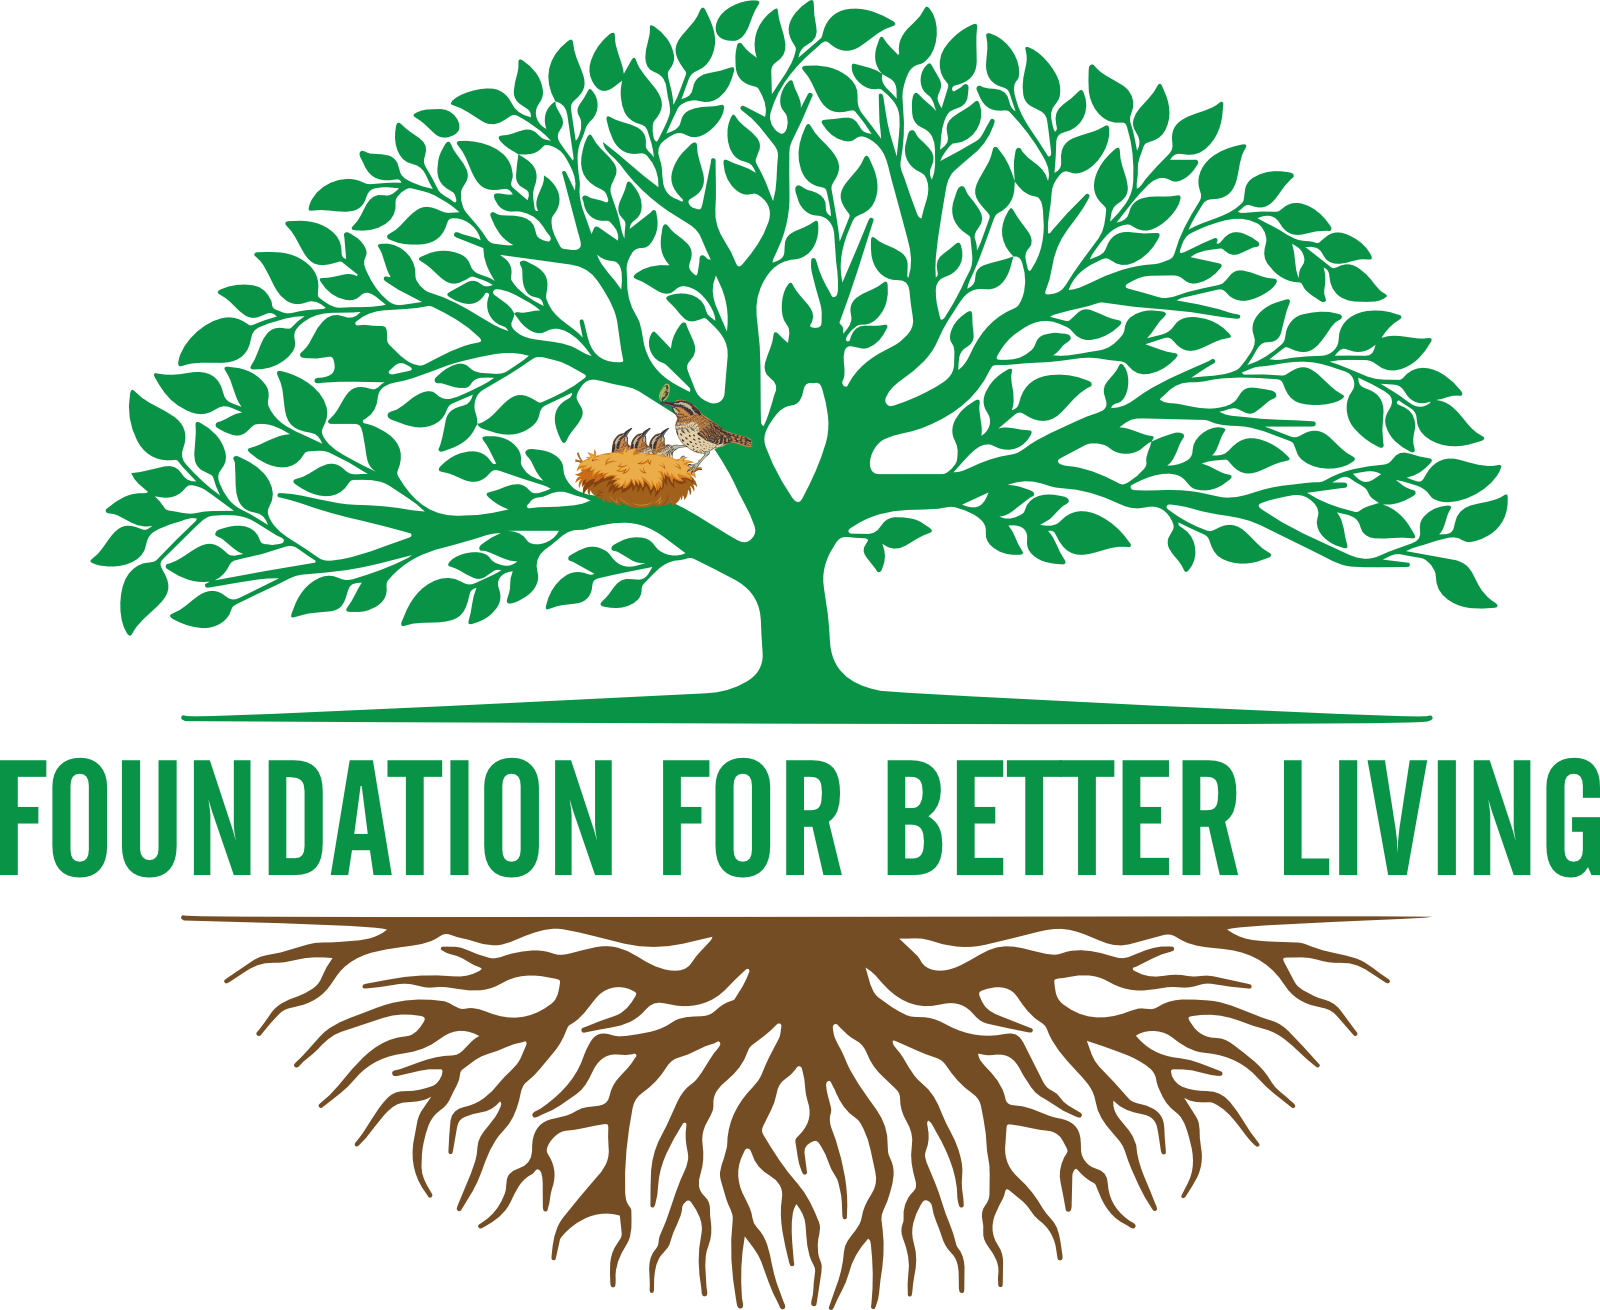 Foundation for Better Living Charity Receives Grant from Riverside County Non-Profit Fund to Establish New Project for Displaced People